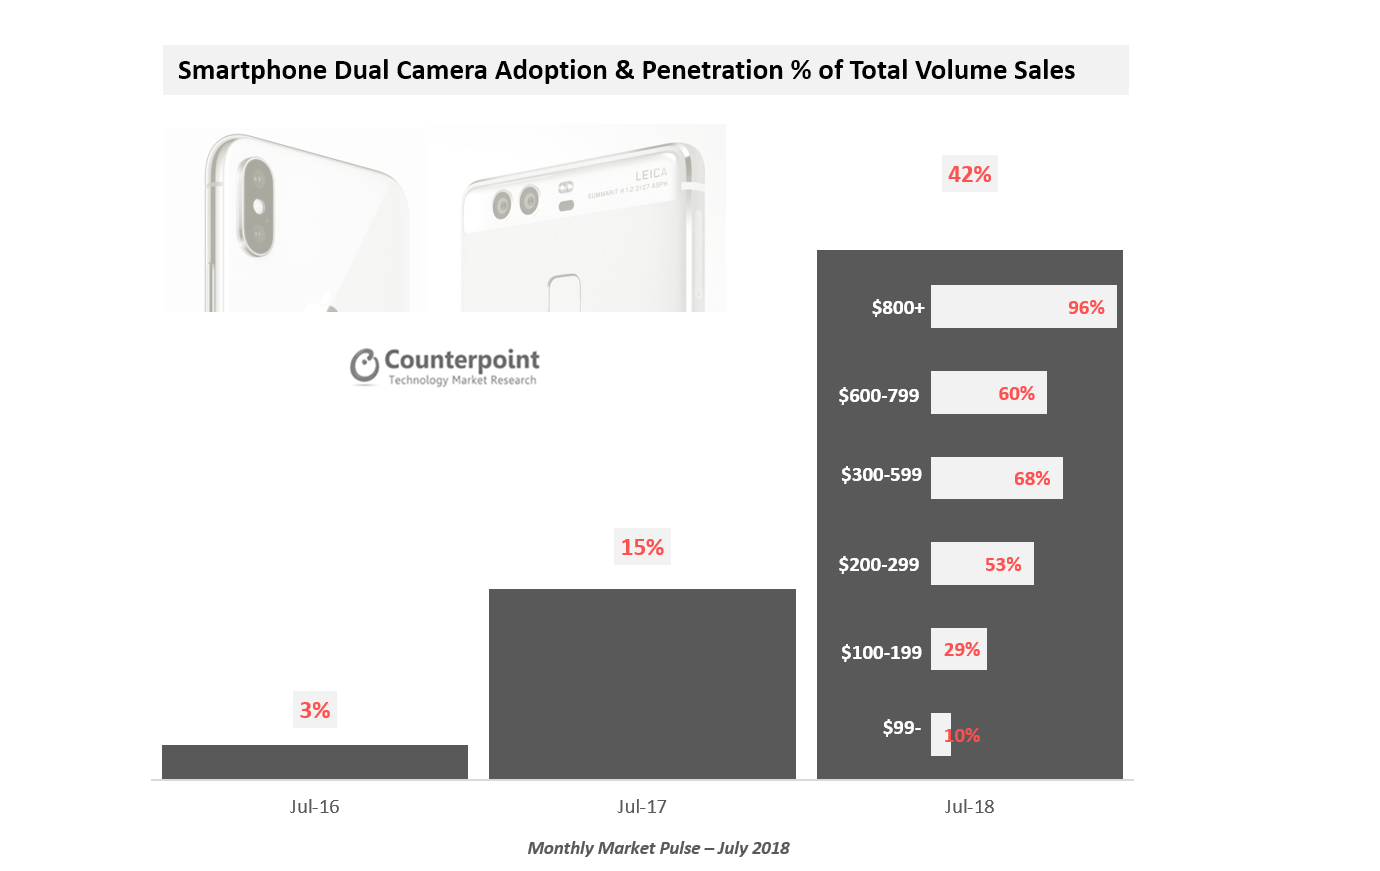 Smartphone Dual Camera Adoption & Penetration % of Total Volume Sales